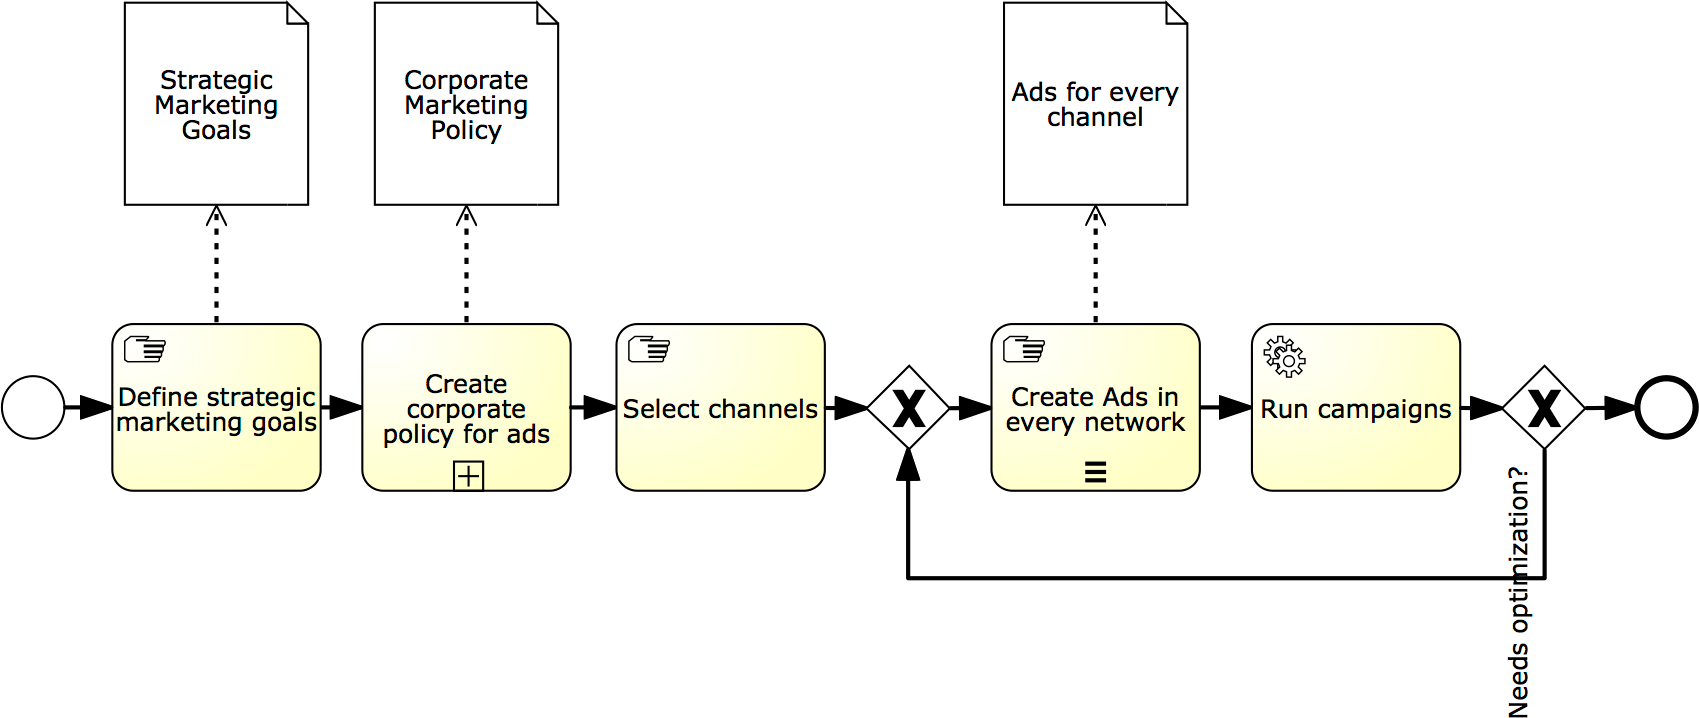 Online marketing process modelled in BPMN